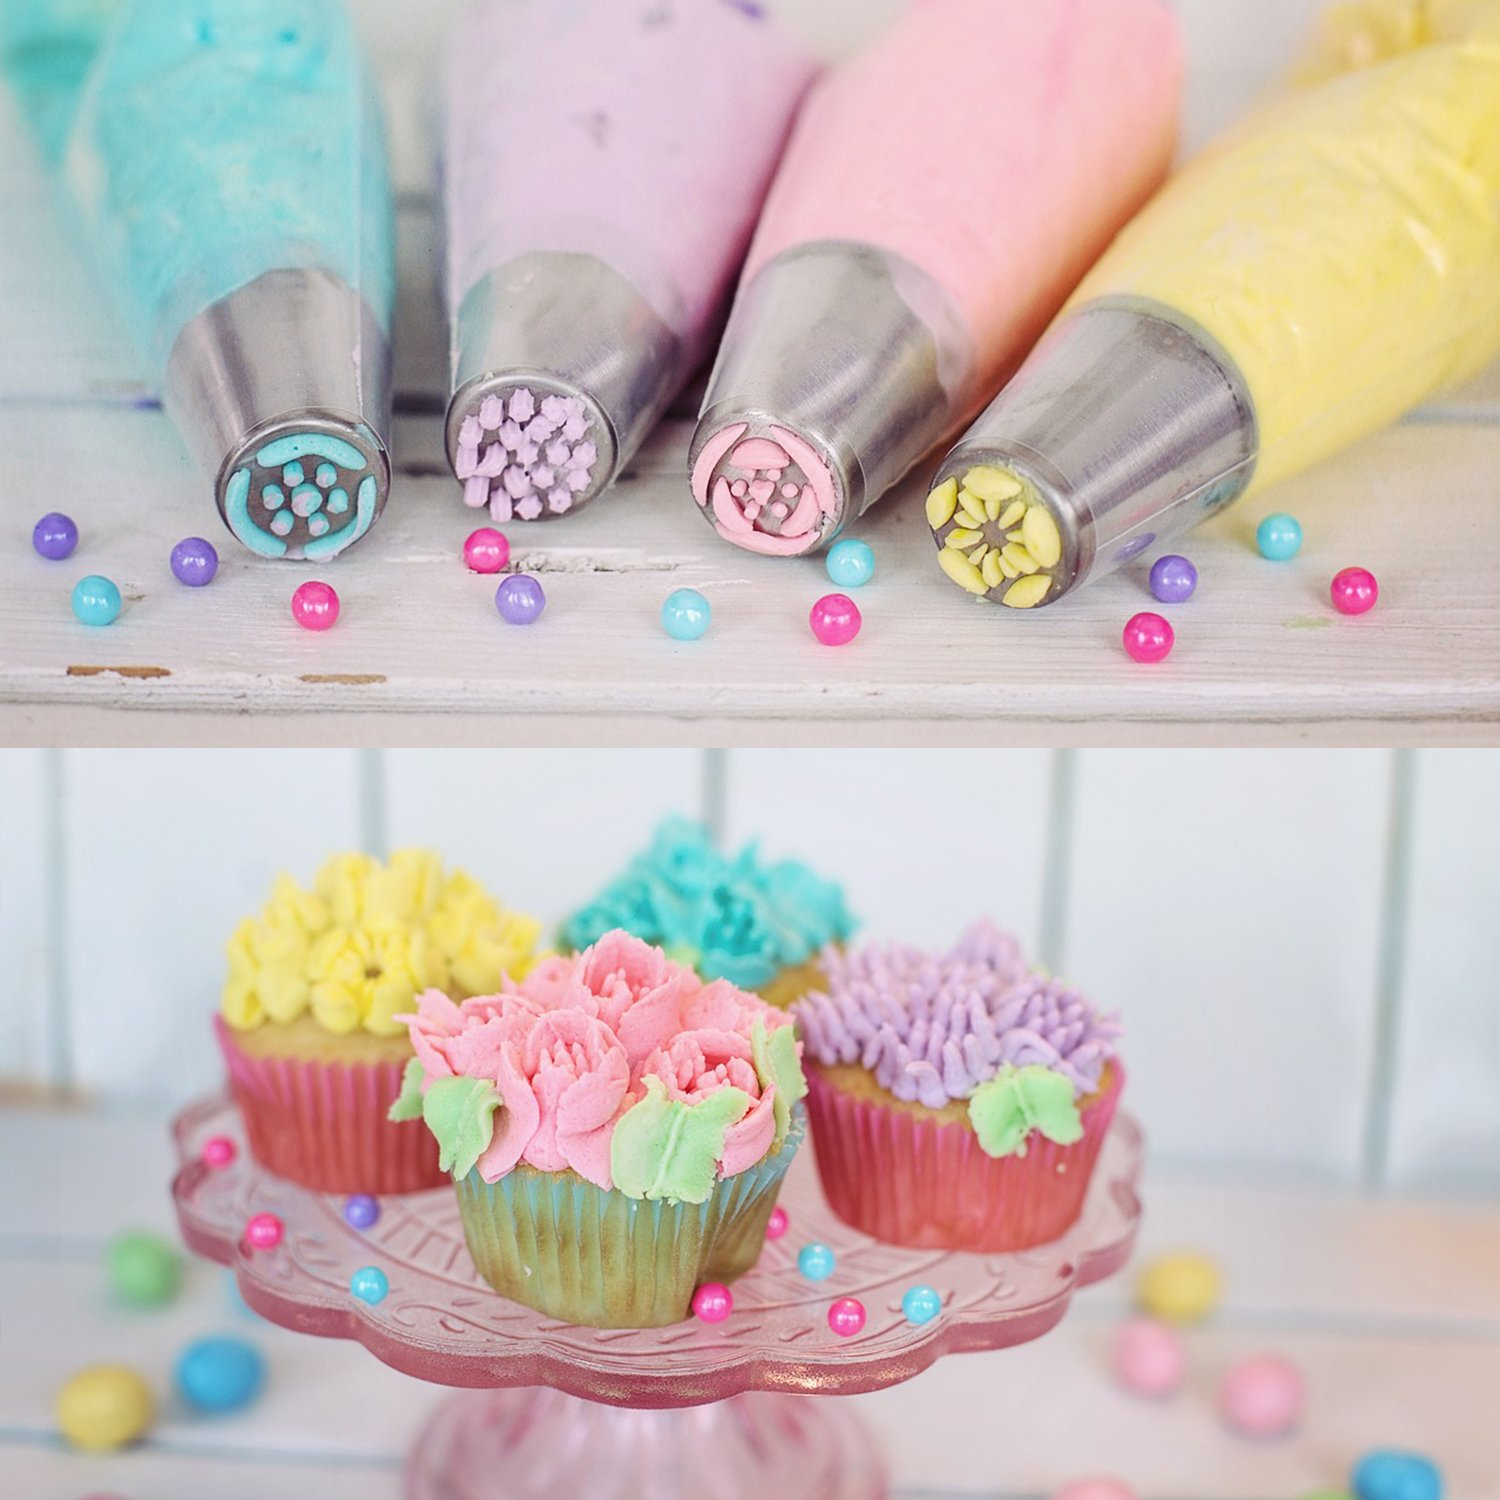 Russian Piping Tips Set - 53 pcs Cake Decorating Tips For cake, Muffins and Ice Cream Decoration Including 15 Unique Design Icing Piping Tips, 4 Couplers, 32 Bags with Gift Box for Mother's Day by Face Forever (Image #4)